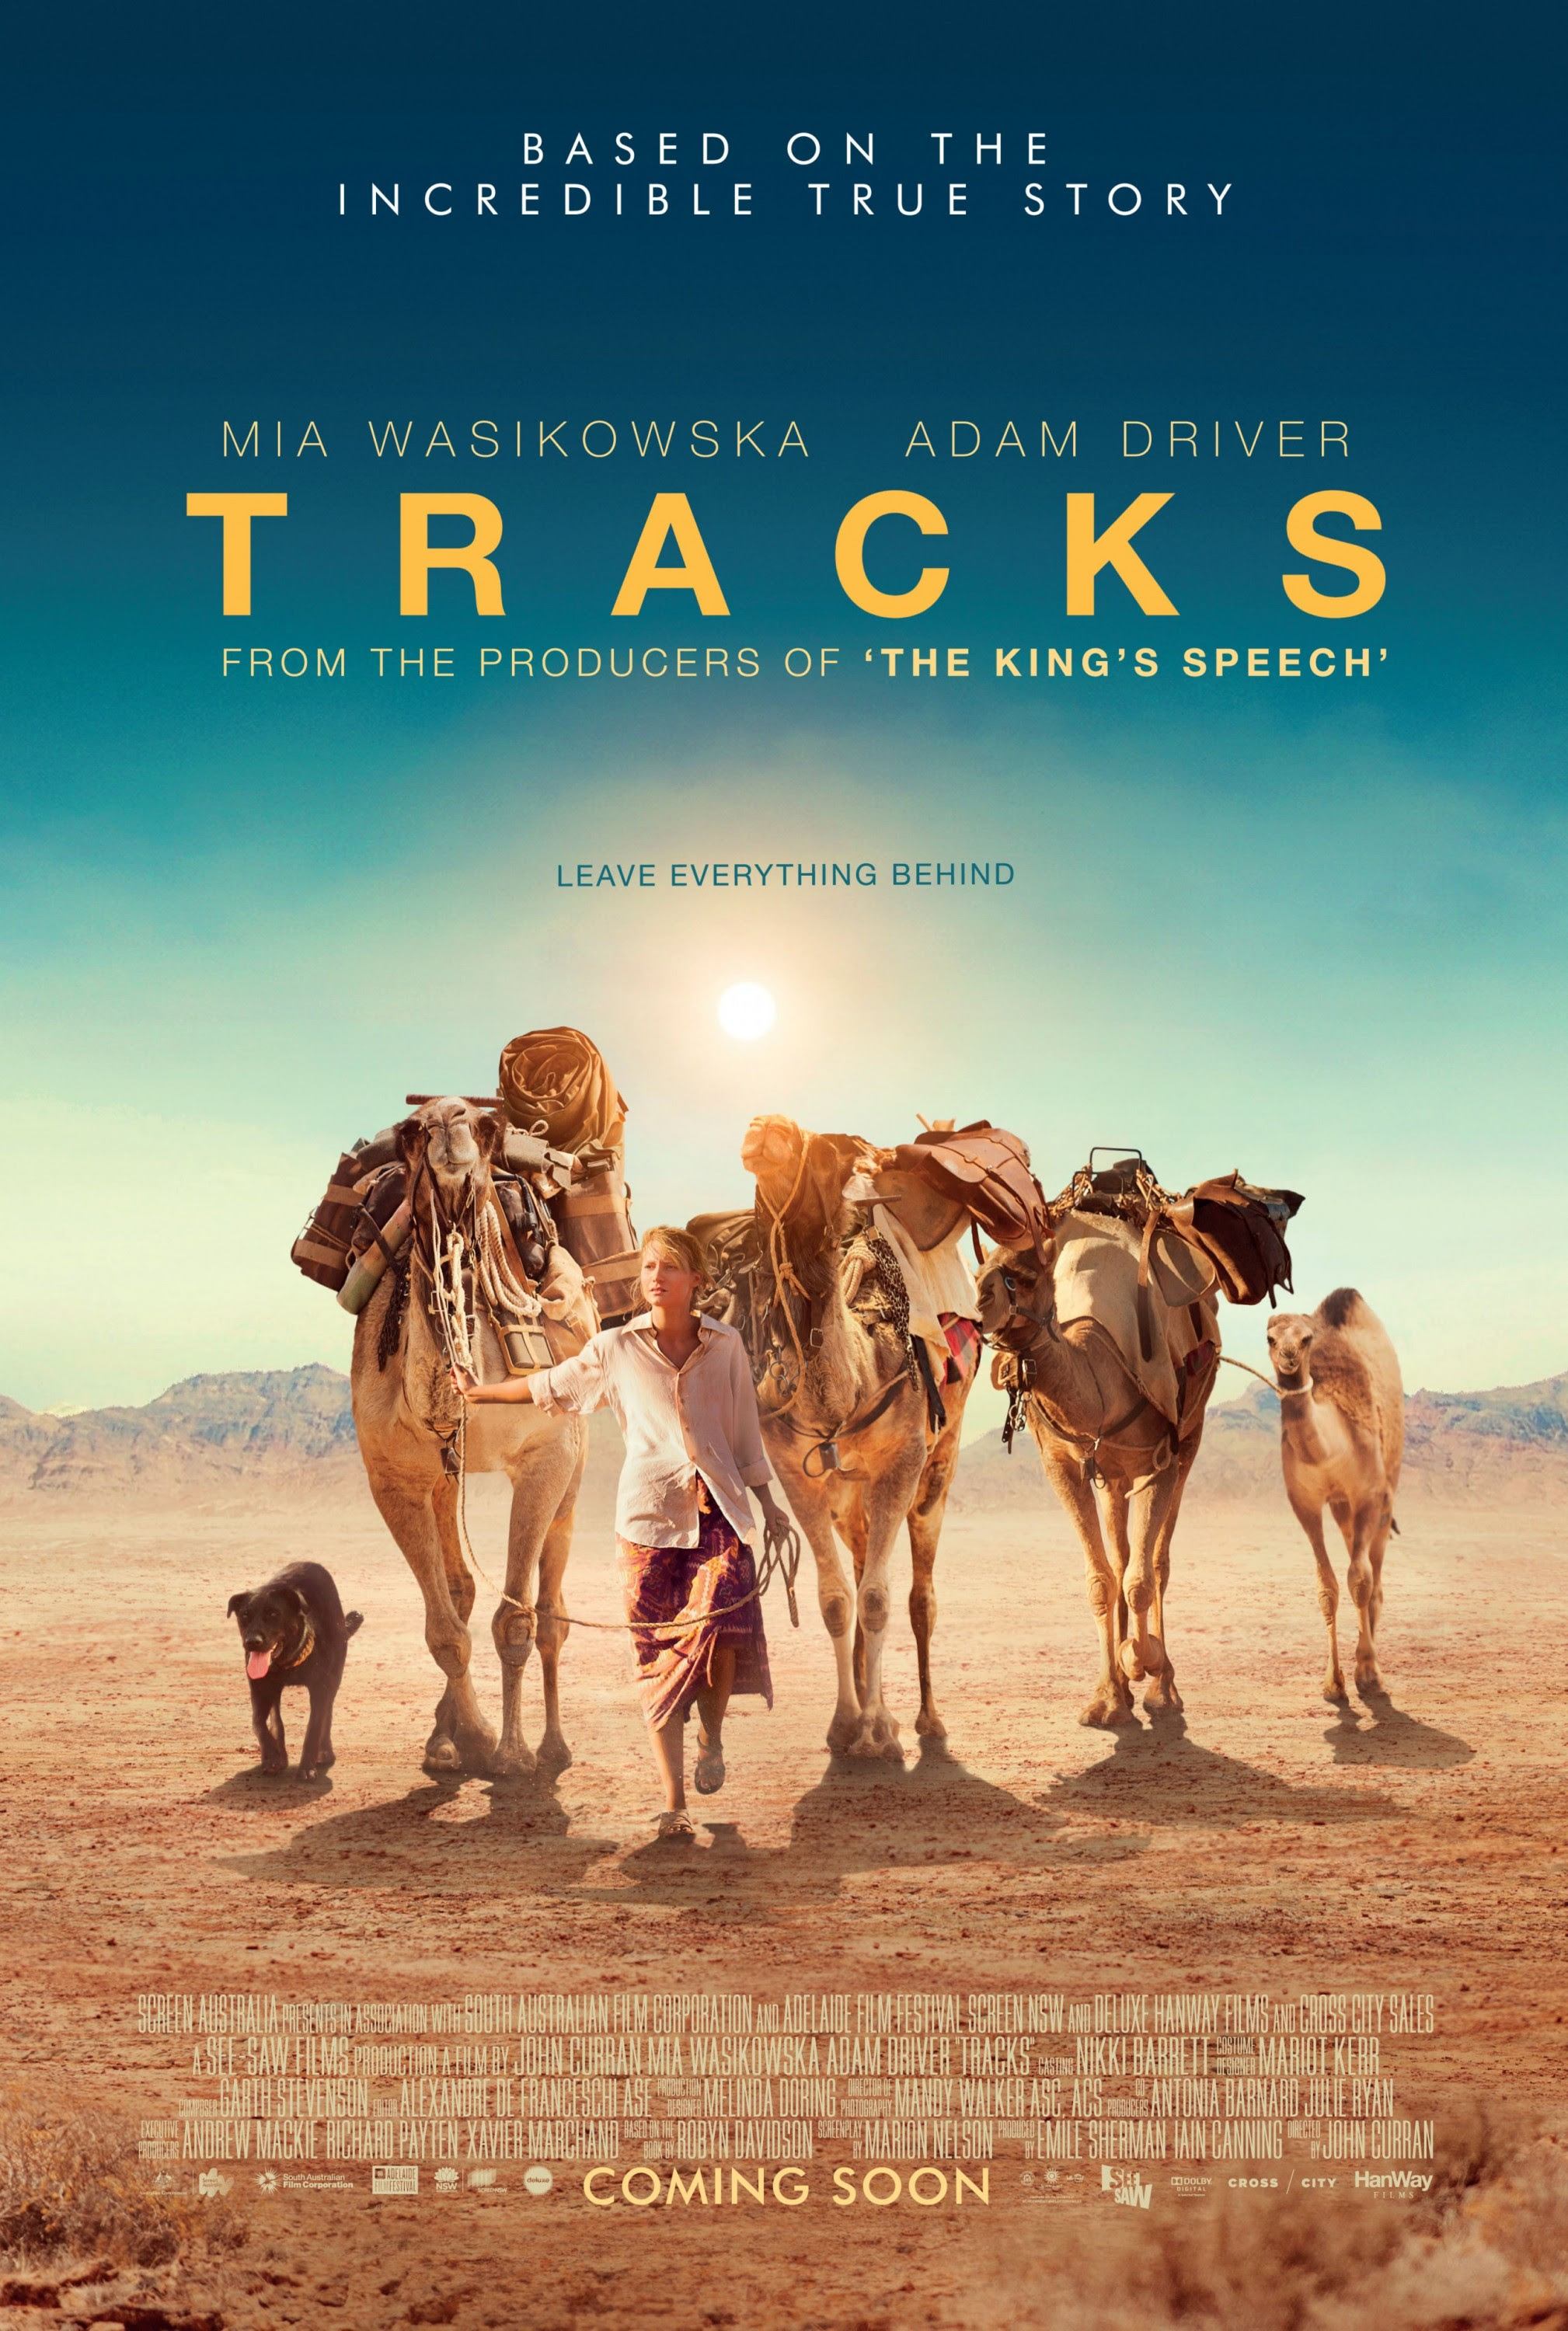 Mega Sized Movie Poster Image for Tracks